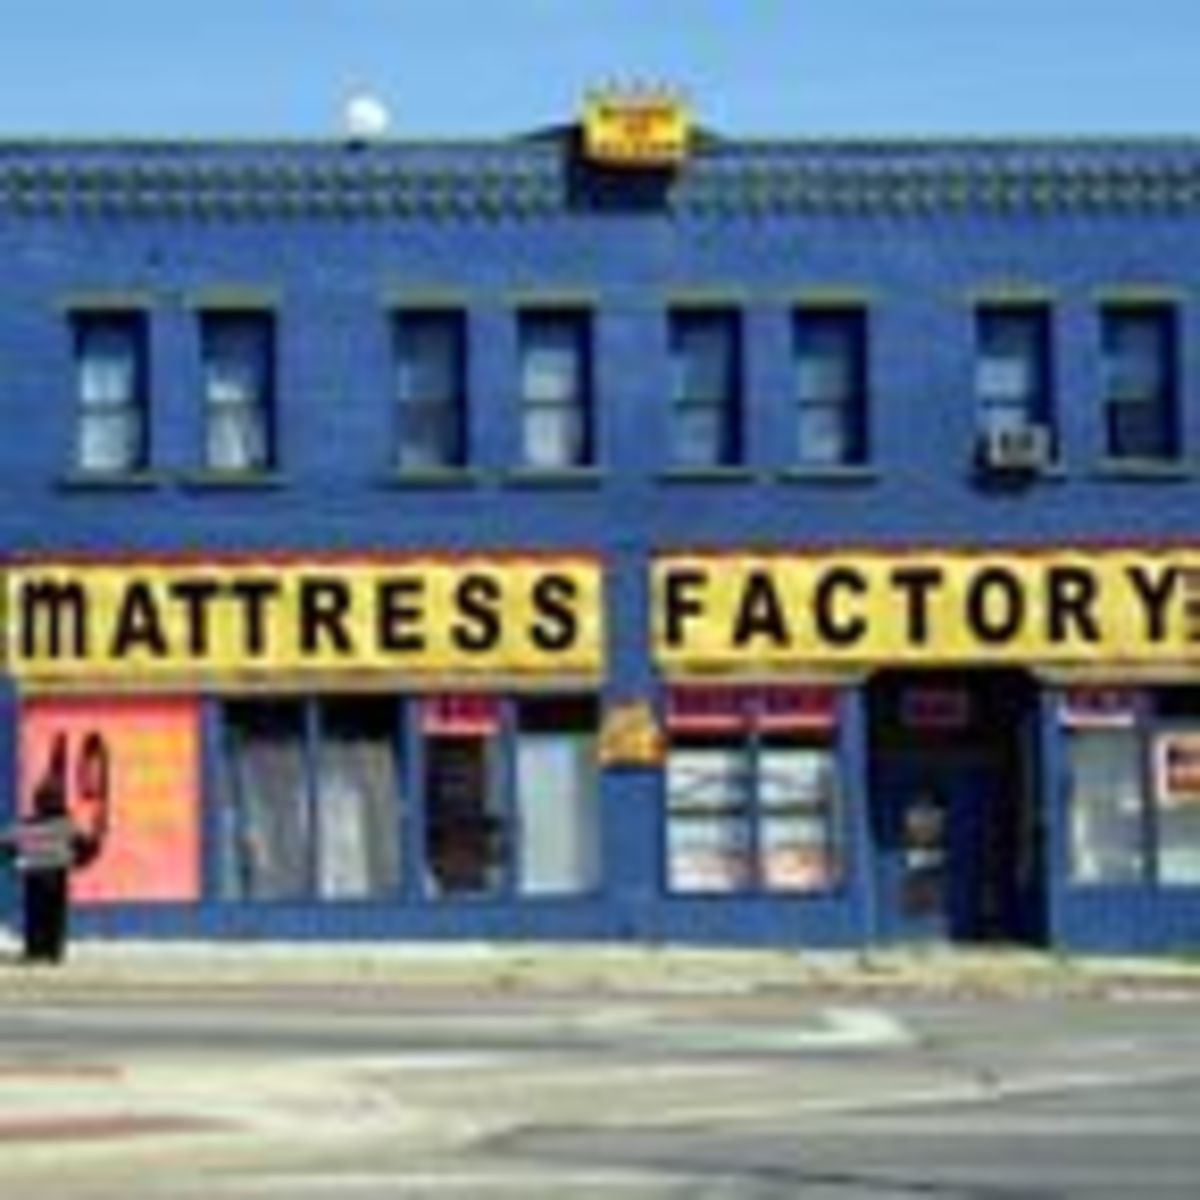 Why Are There So Many Mattress Stores in America